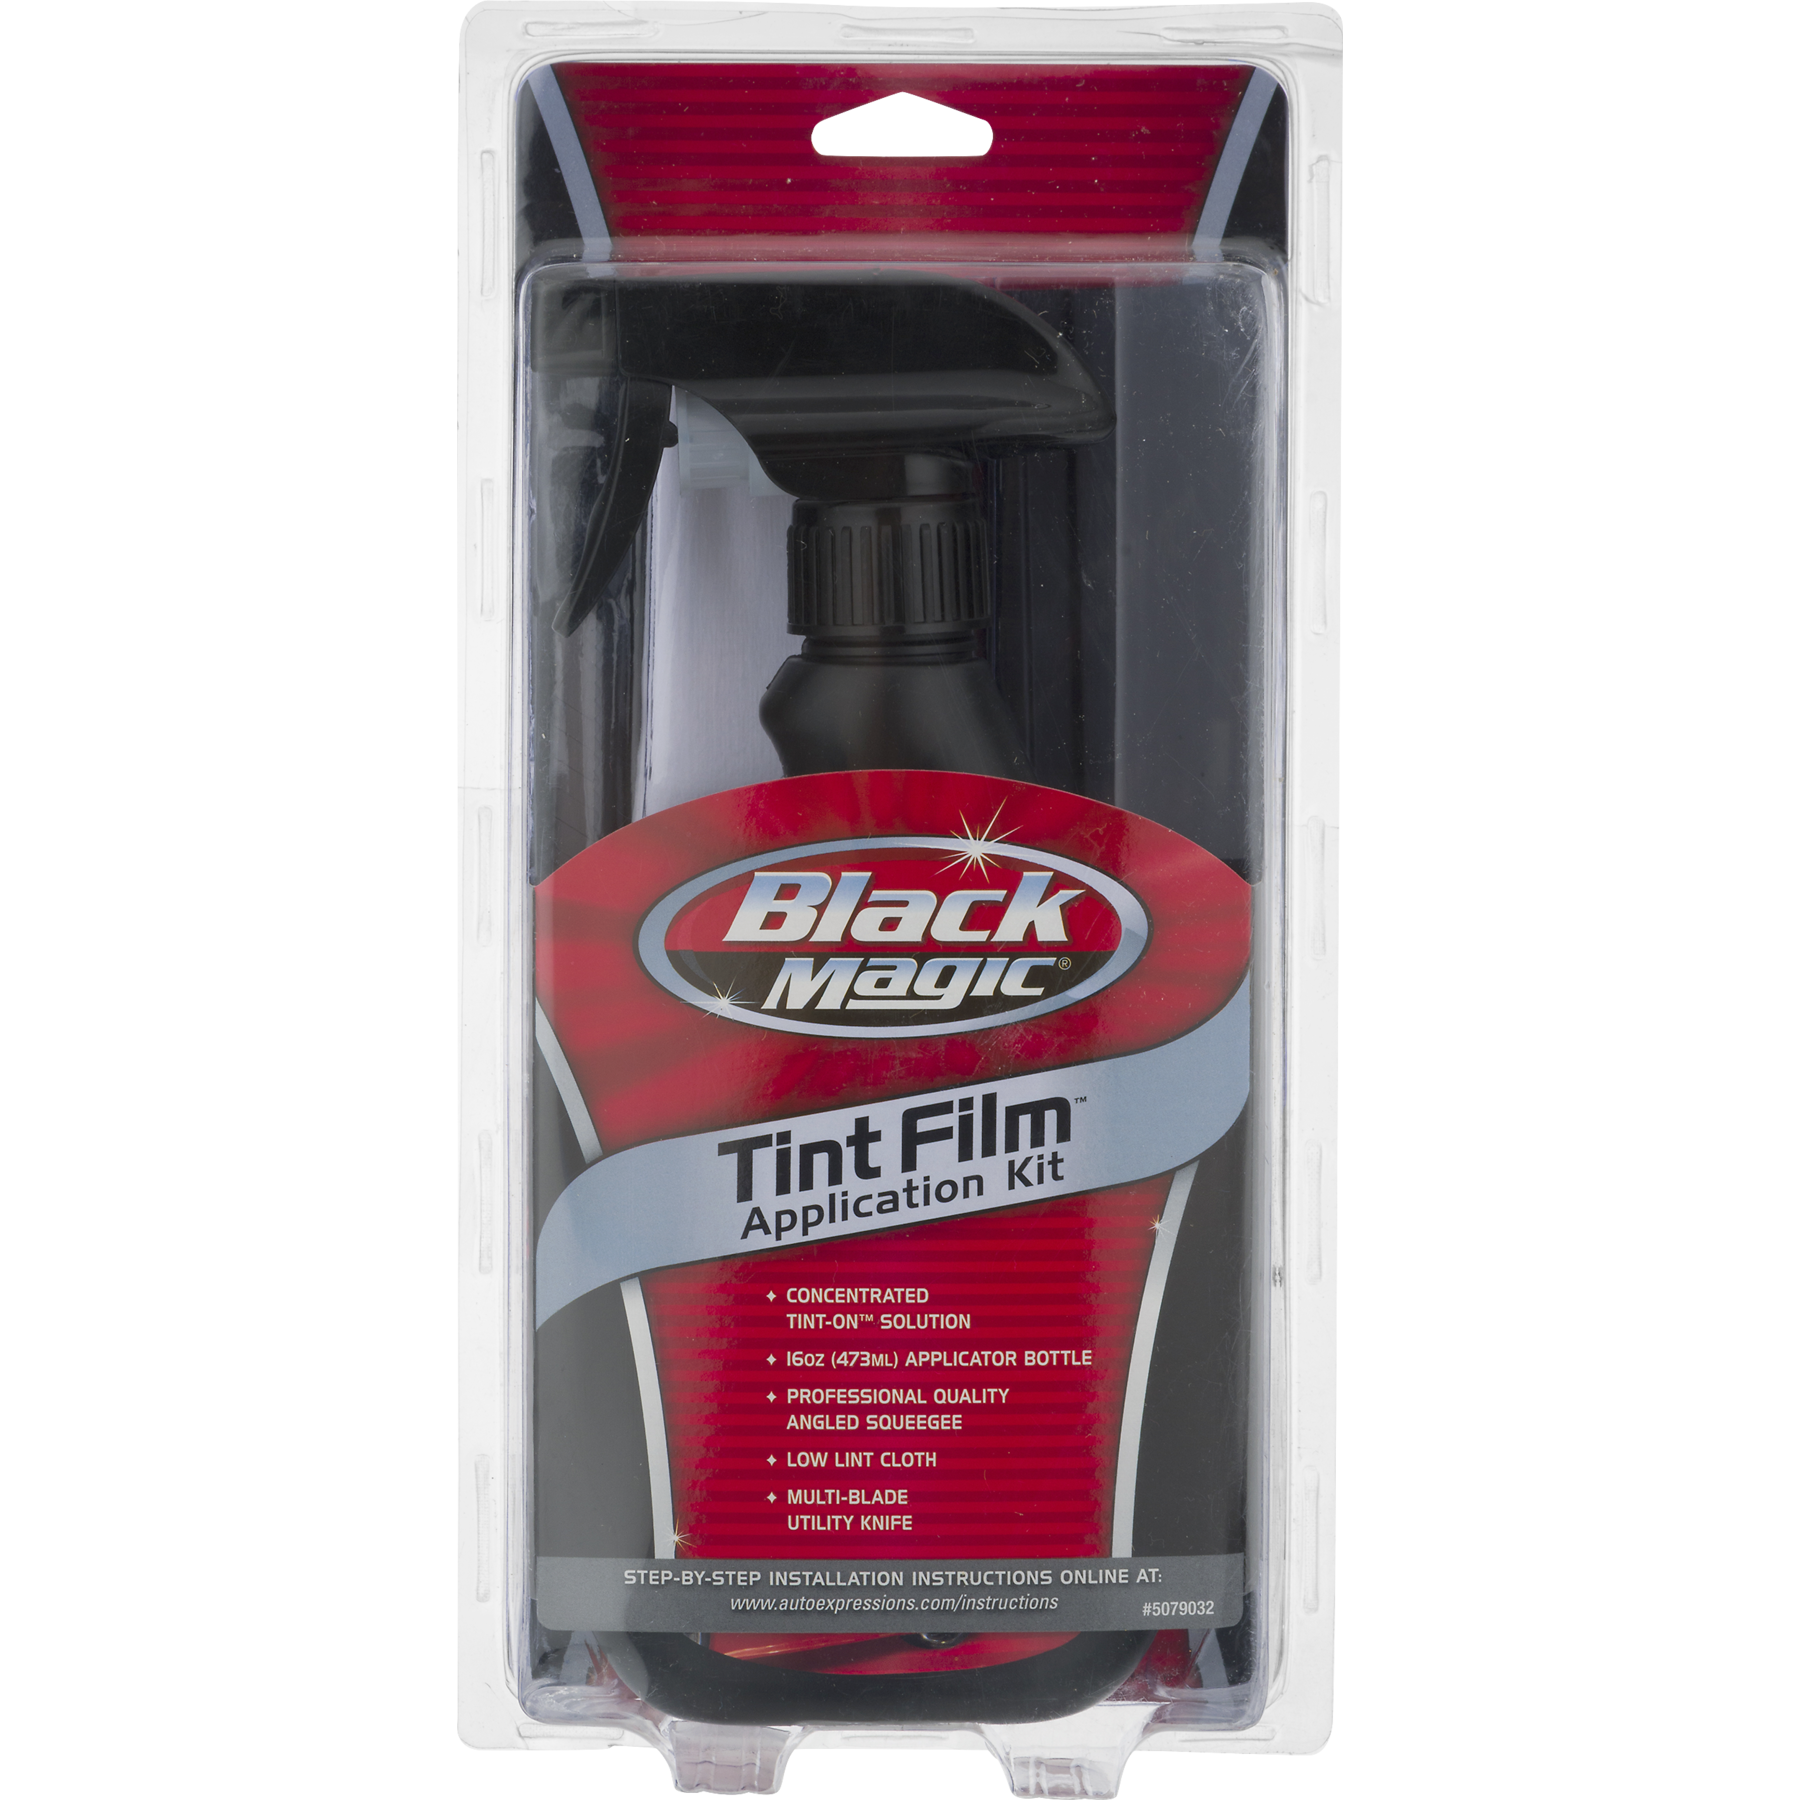 Black magic tint film application kit 10 kit walmart solutioingenieria Gallery